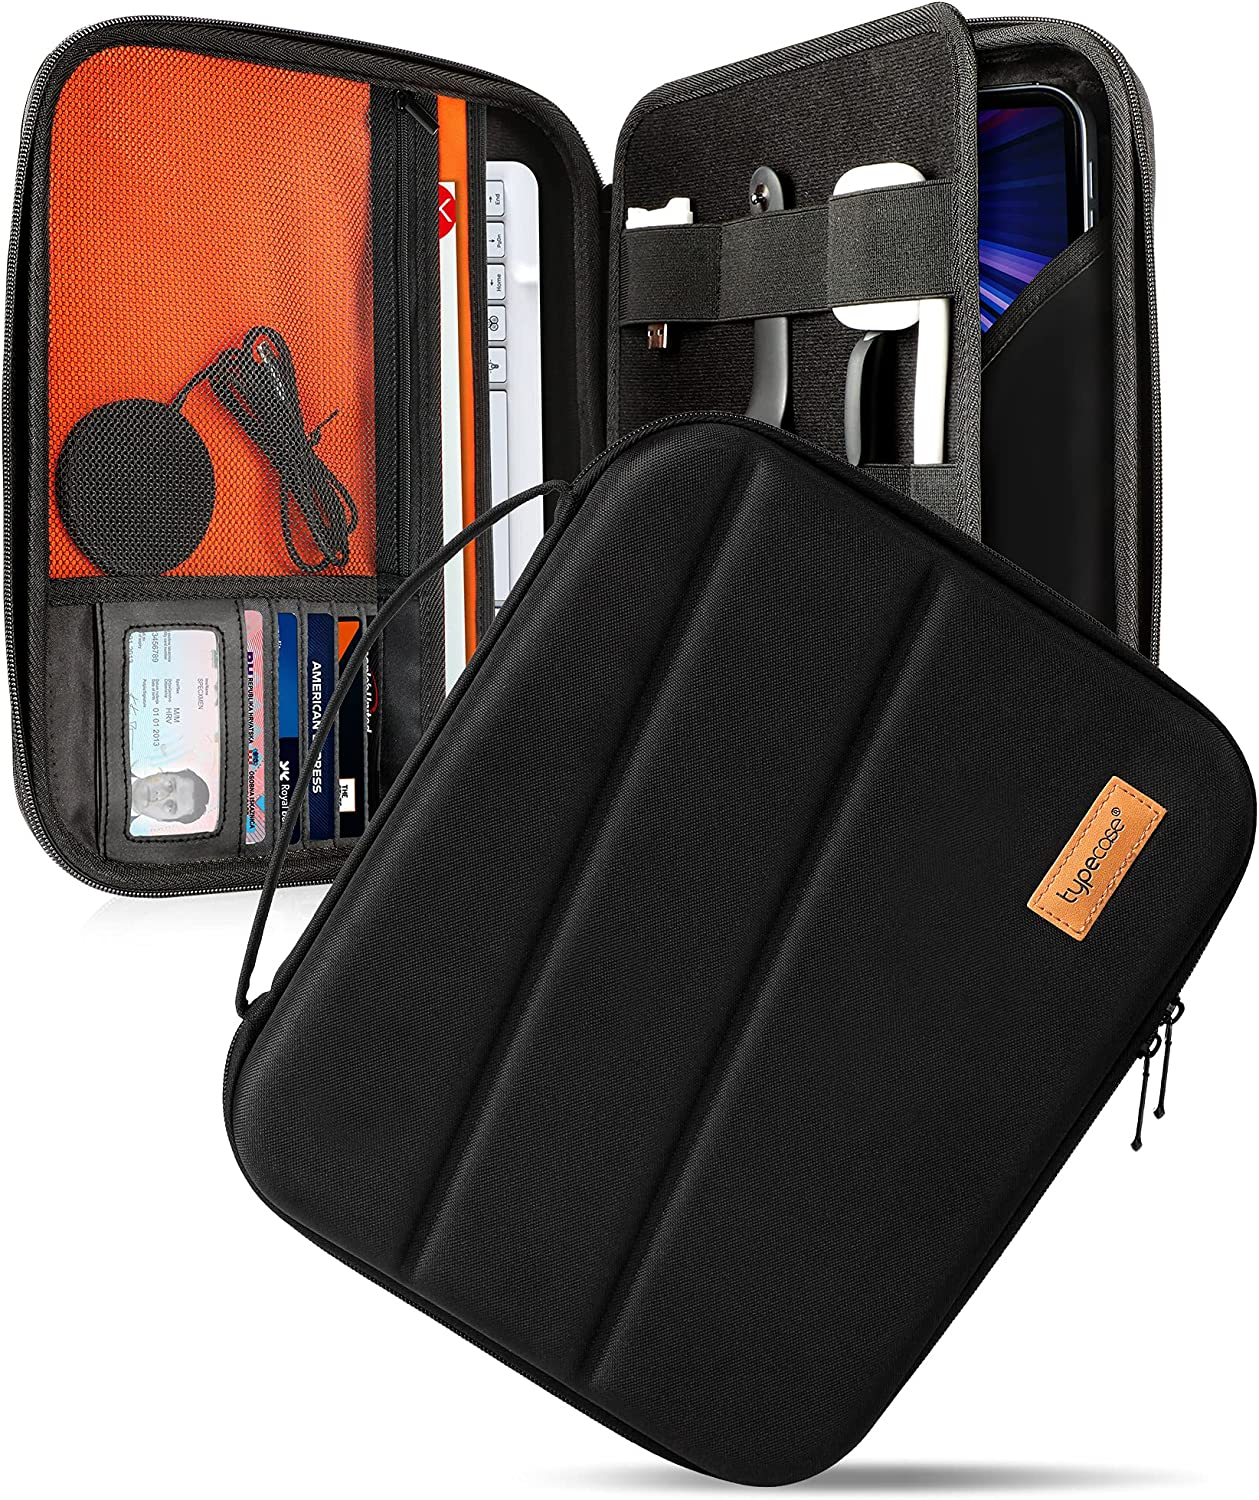 typecase Tablet Sleeve 5 ☆ popular Bag for iPad Ge 3rd 12.9-Inch 5th Outlet SALE 4th Pro